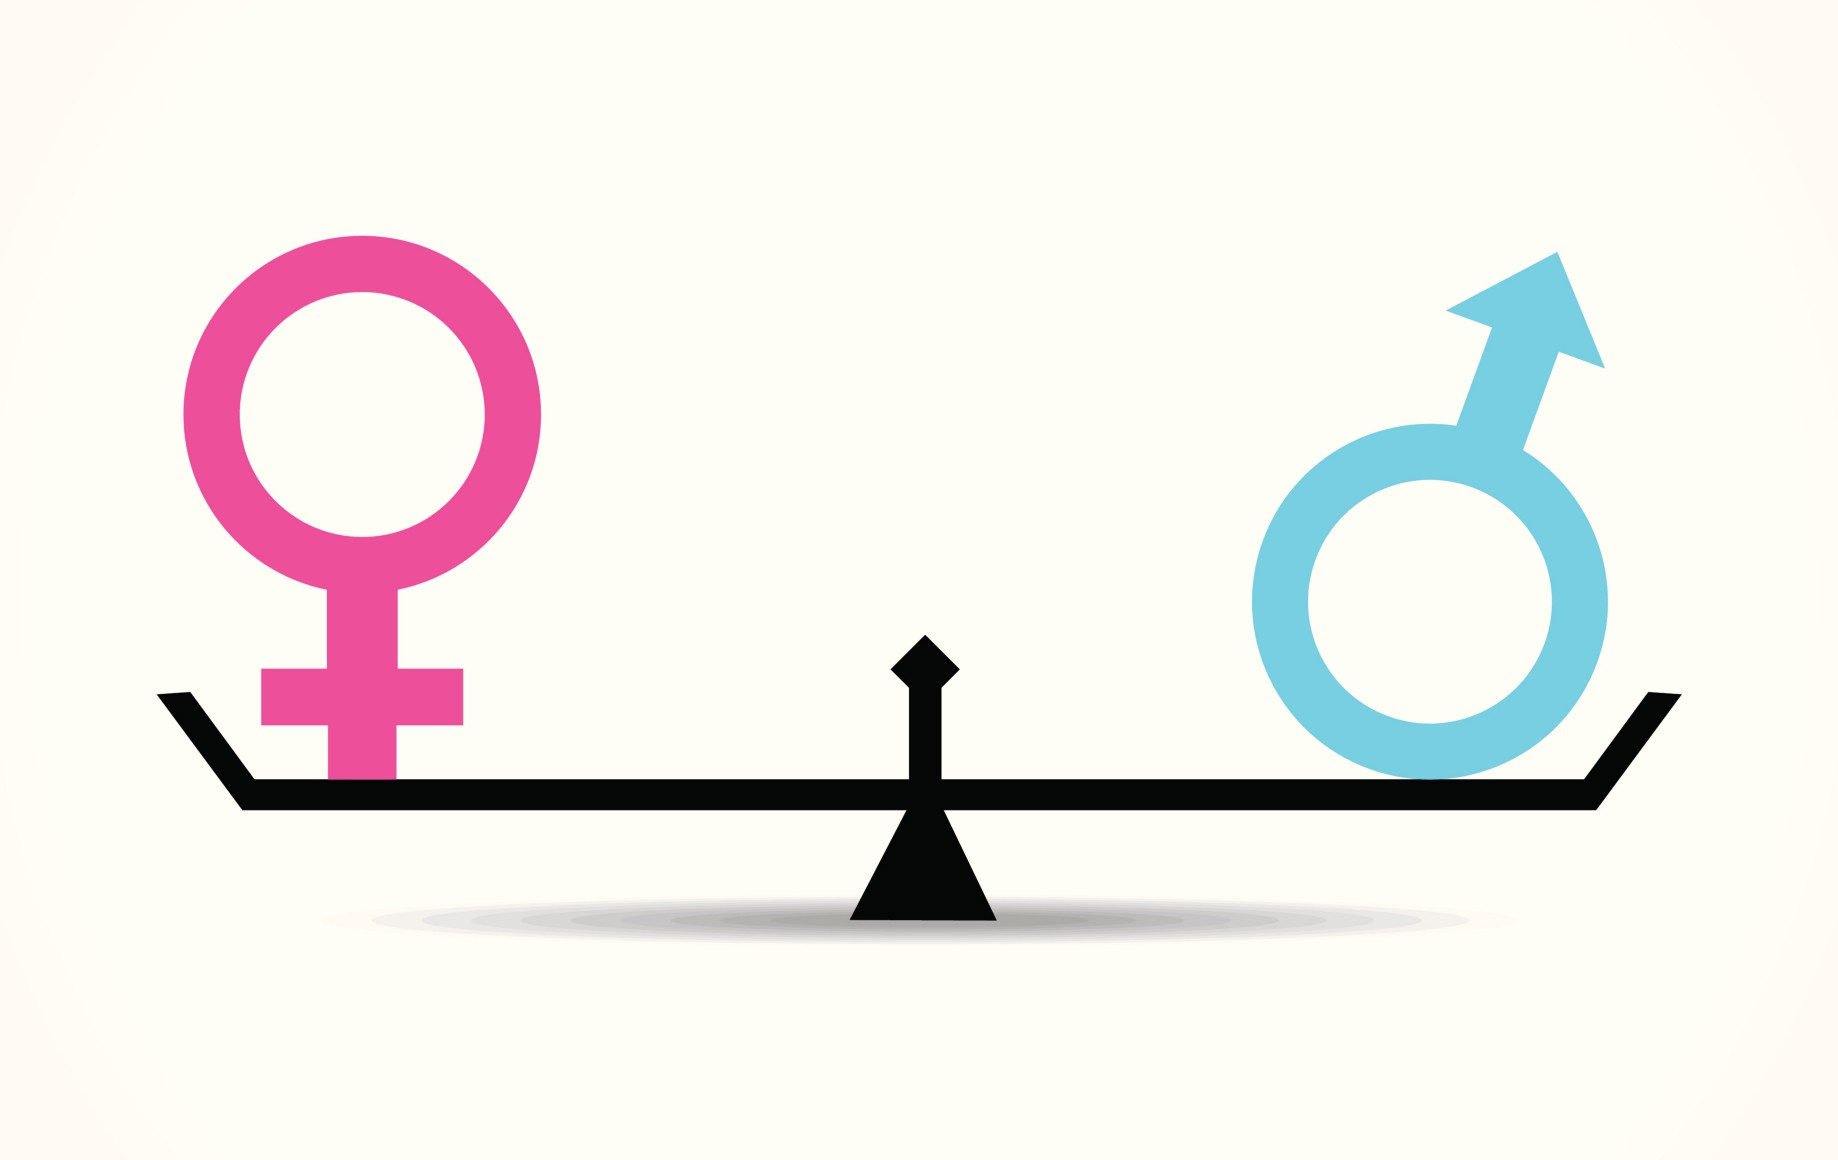 Masculine Or Feminine? : Why We Should Look Beyond That